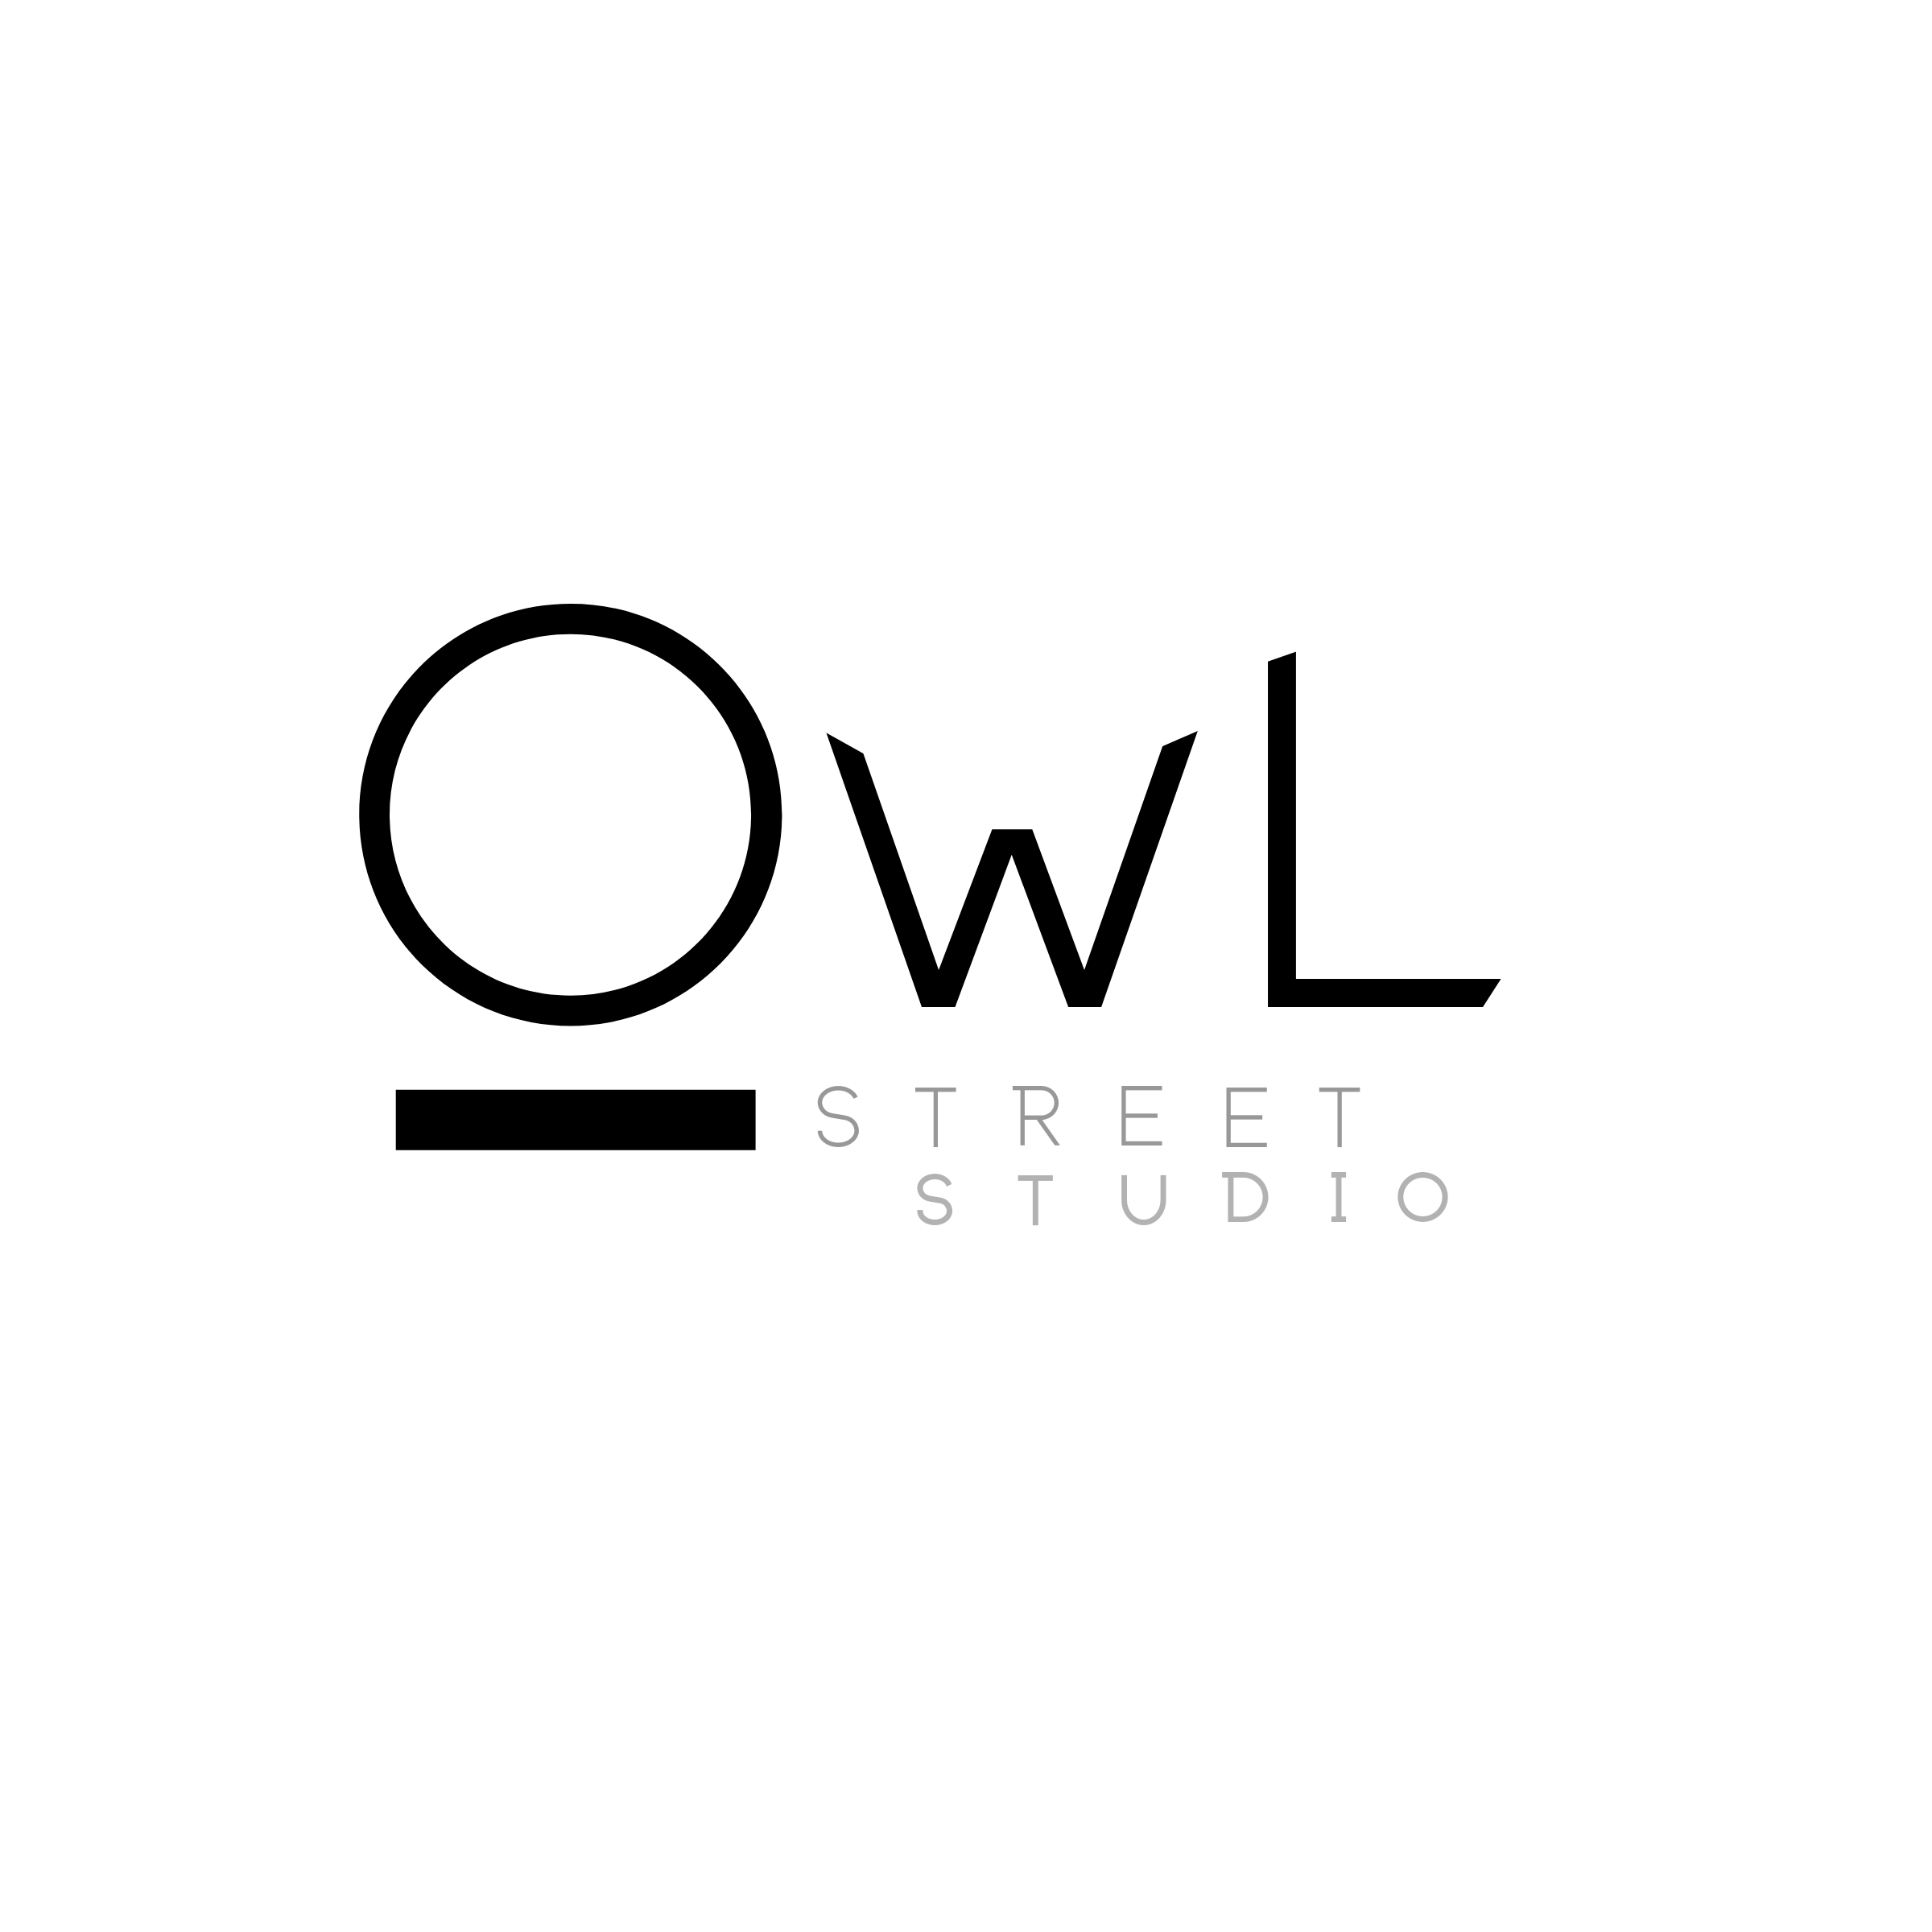 Owl Street Studio Wordmark and Logo, a marketing and graphic design agency